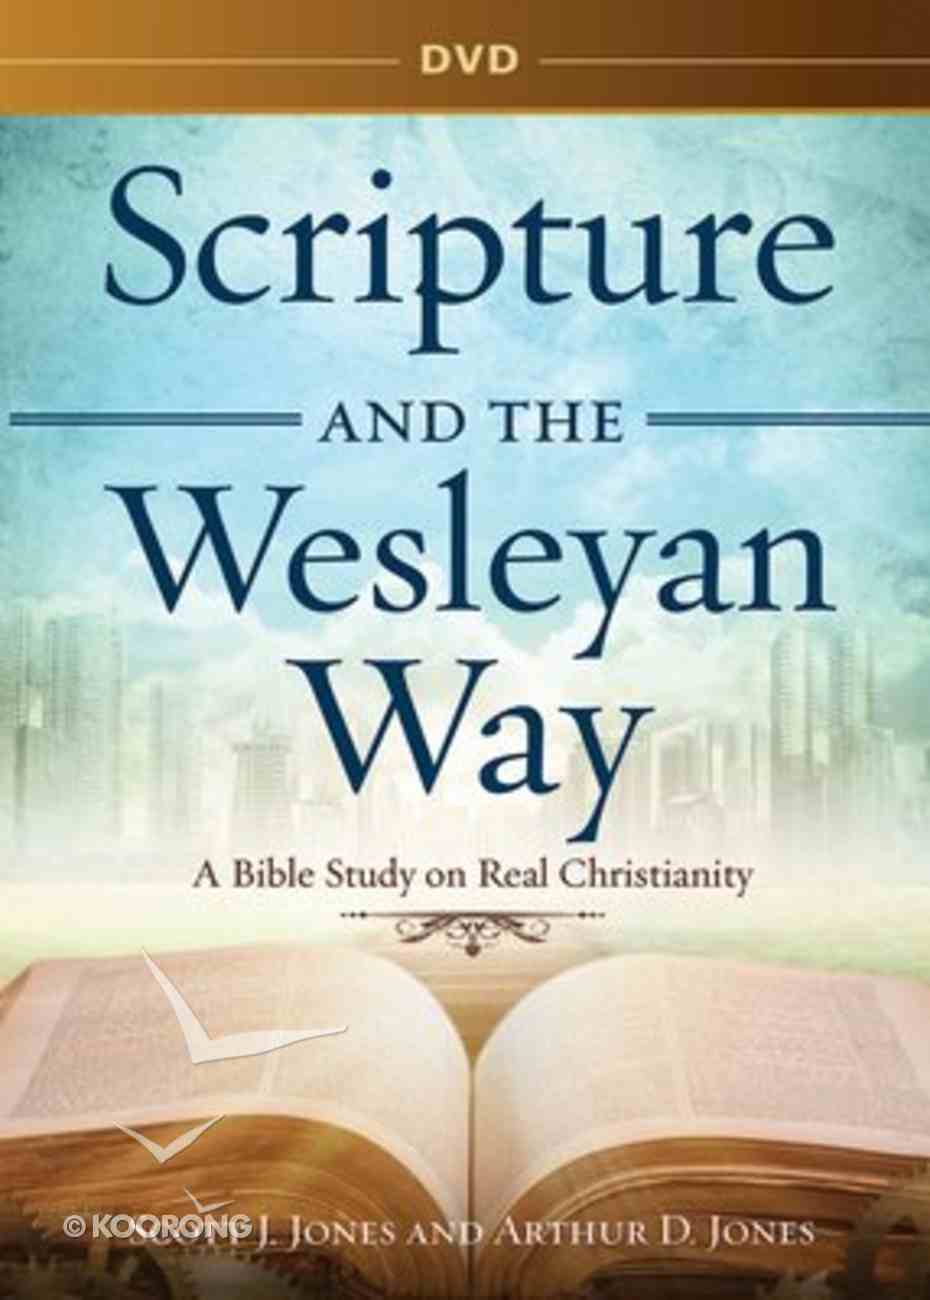 a Bible Study on Real Christianity (Scripture And The Wesleyan Way Series) DVD